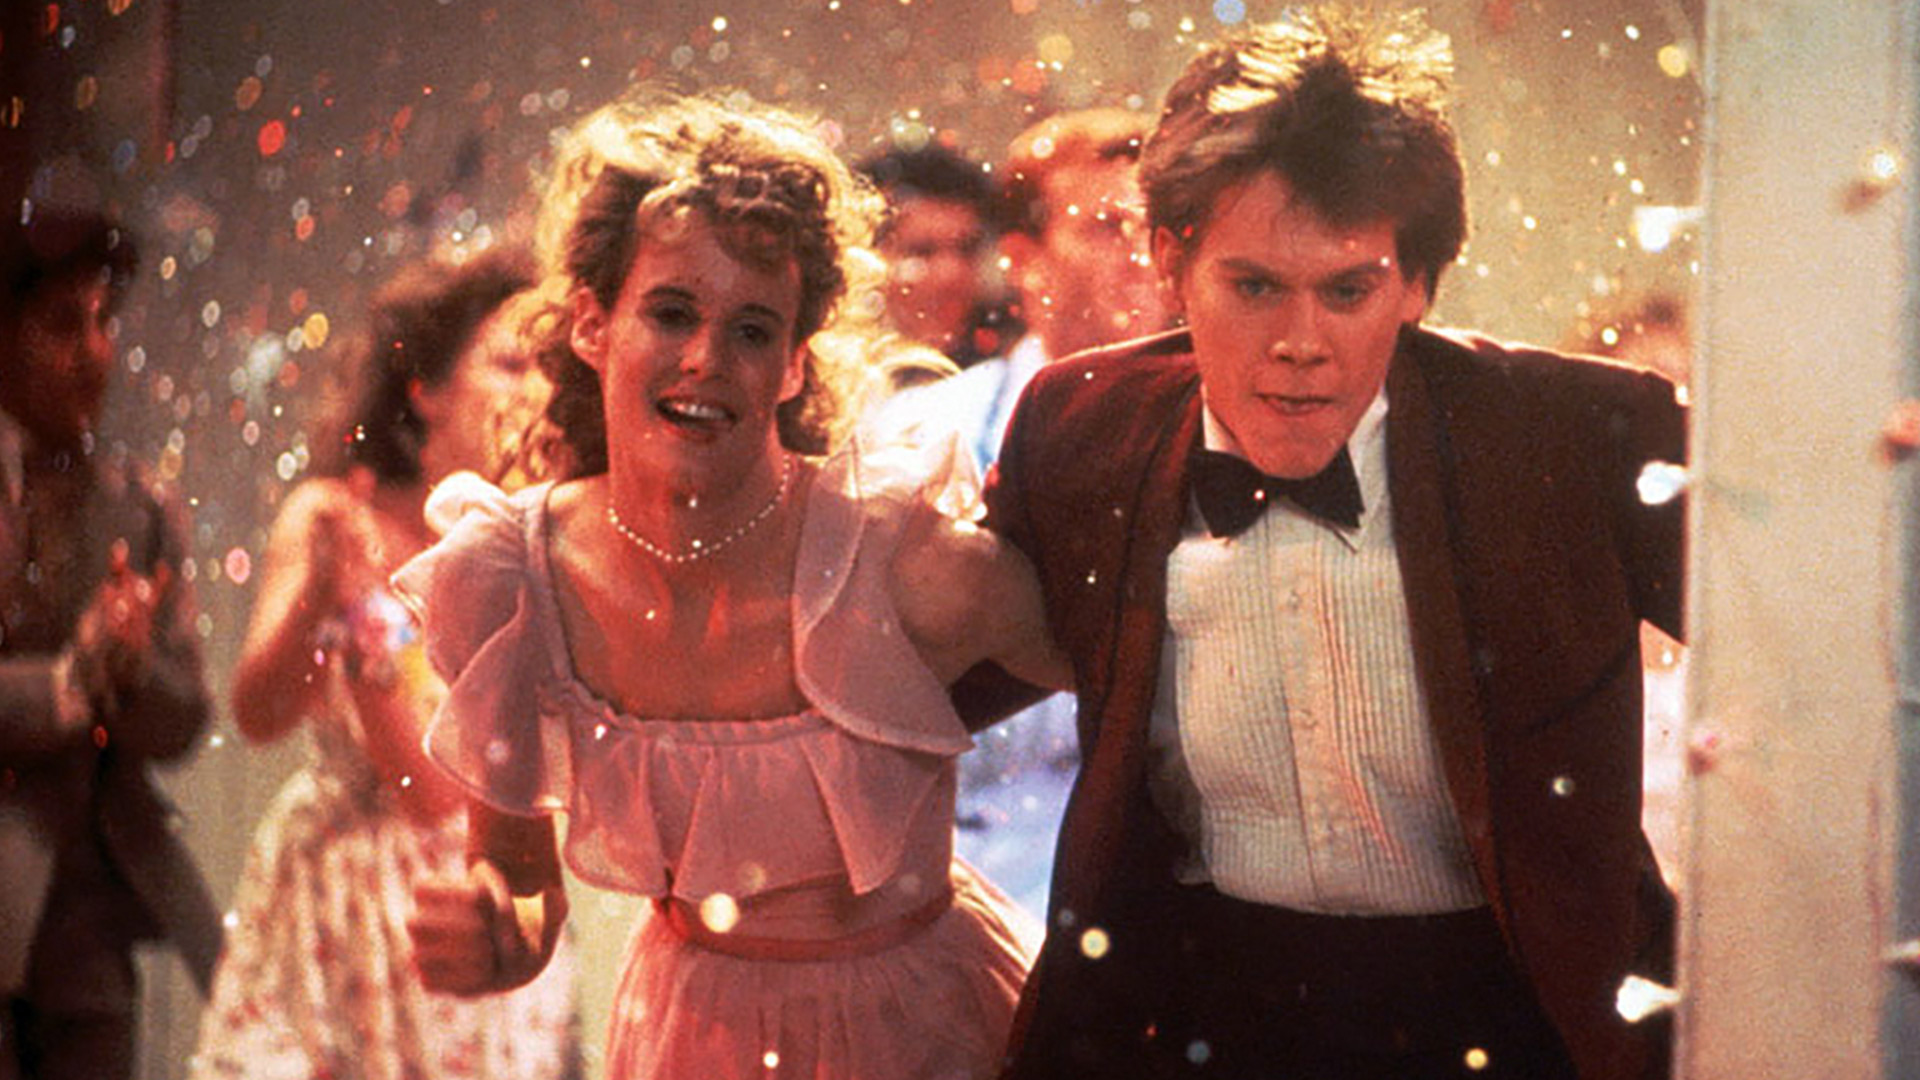 footloose 1984 full movie free online